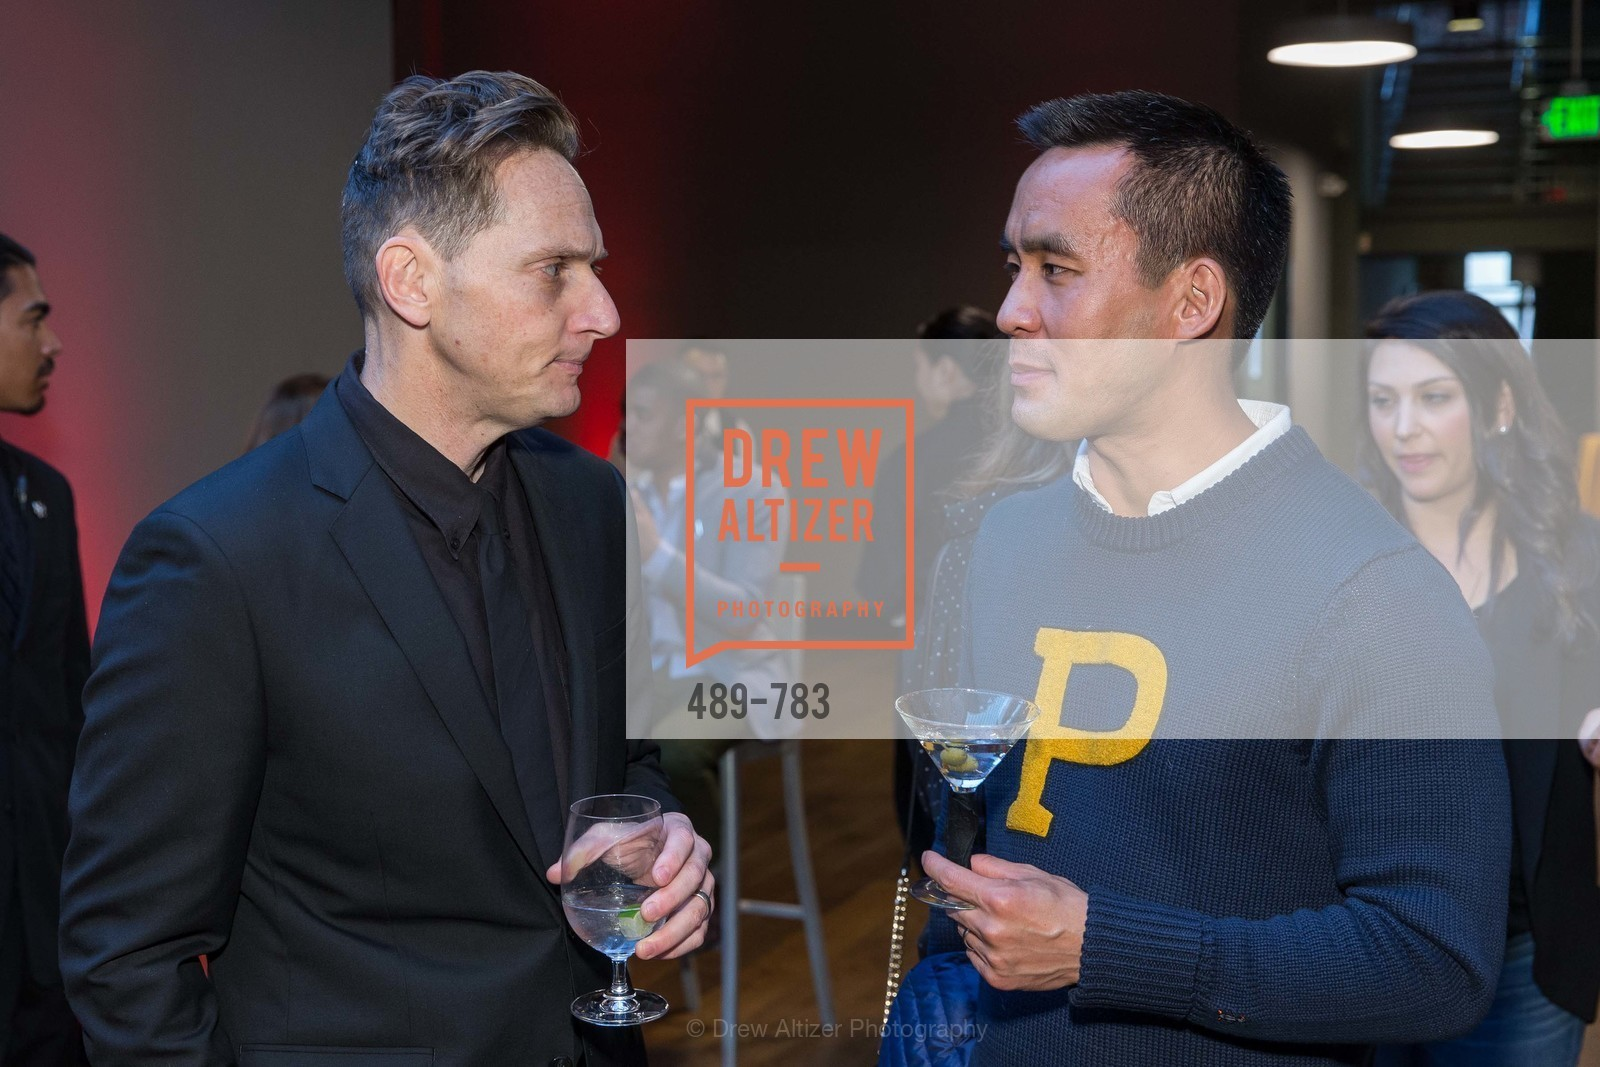 Matt Ross, Patrick Chung, HBO'S SILICON VALLEY San Francisco Screening, US, April 9th, 2015,Drew Altizer, Drew Altizer Photography, full-service event agency, private events, San Francisco photographer, photographer California